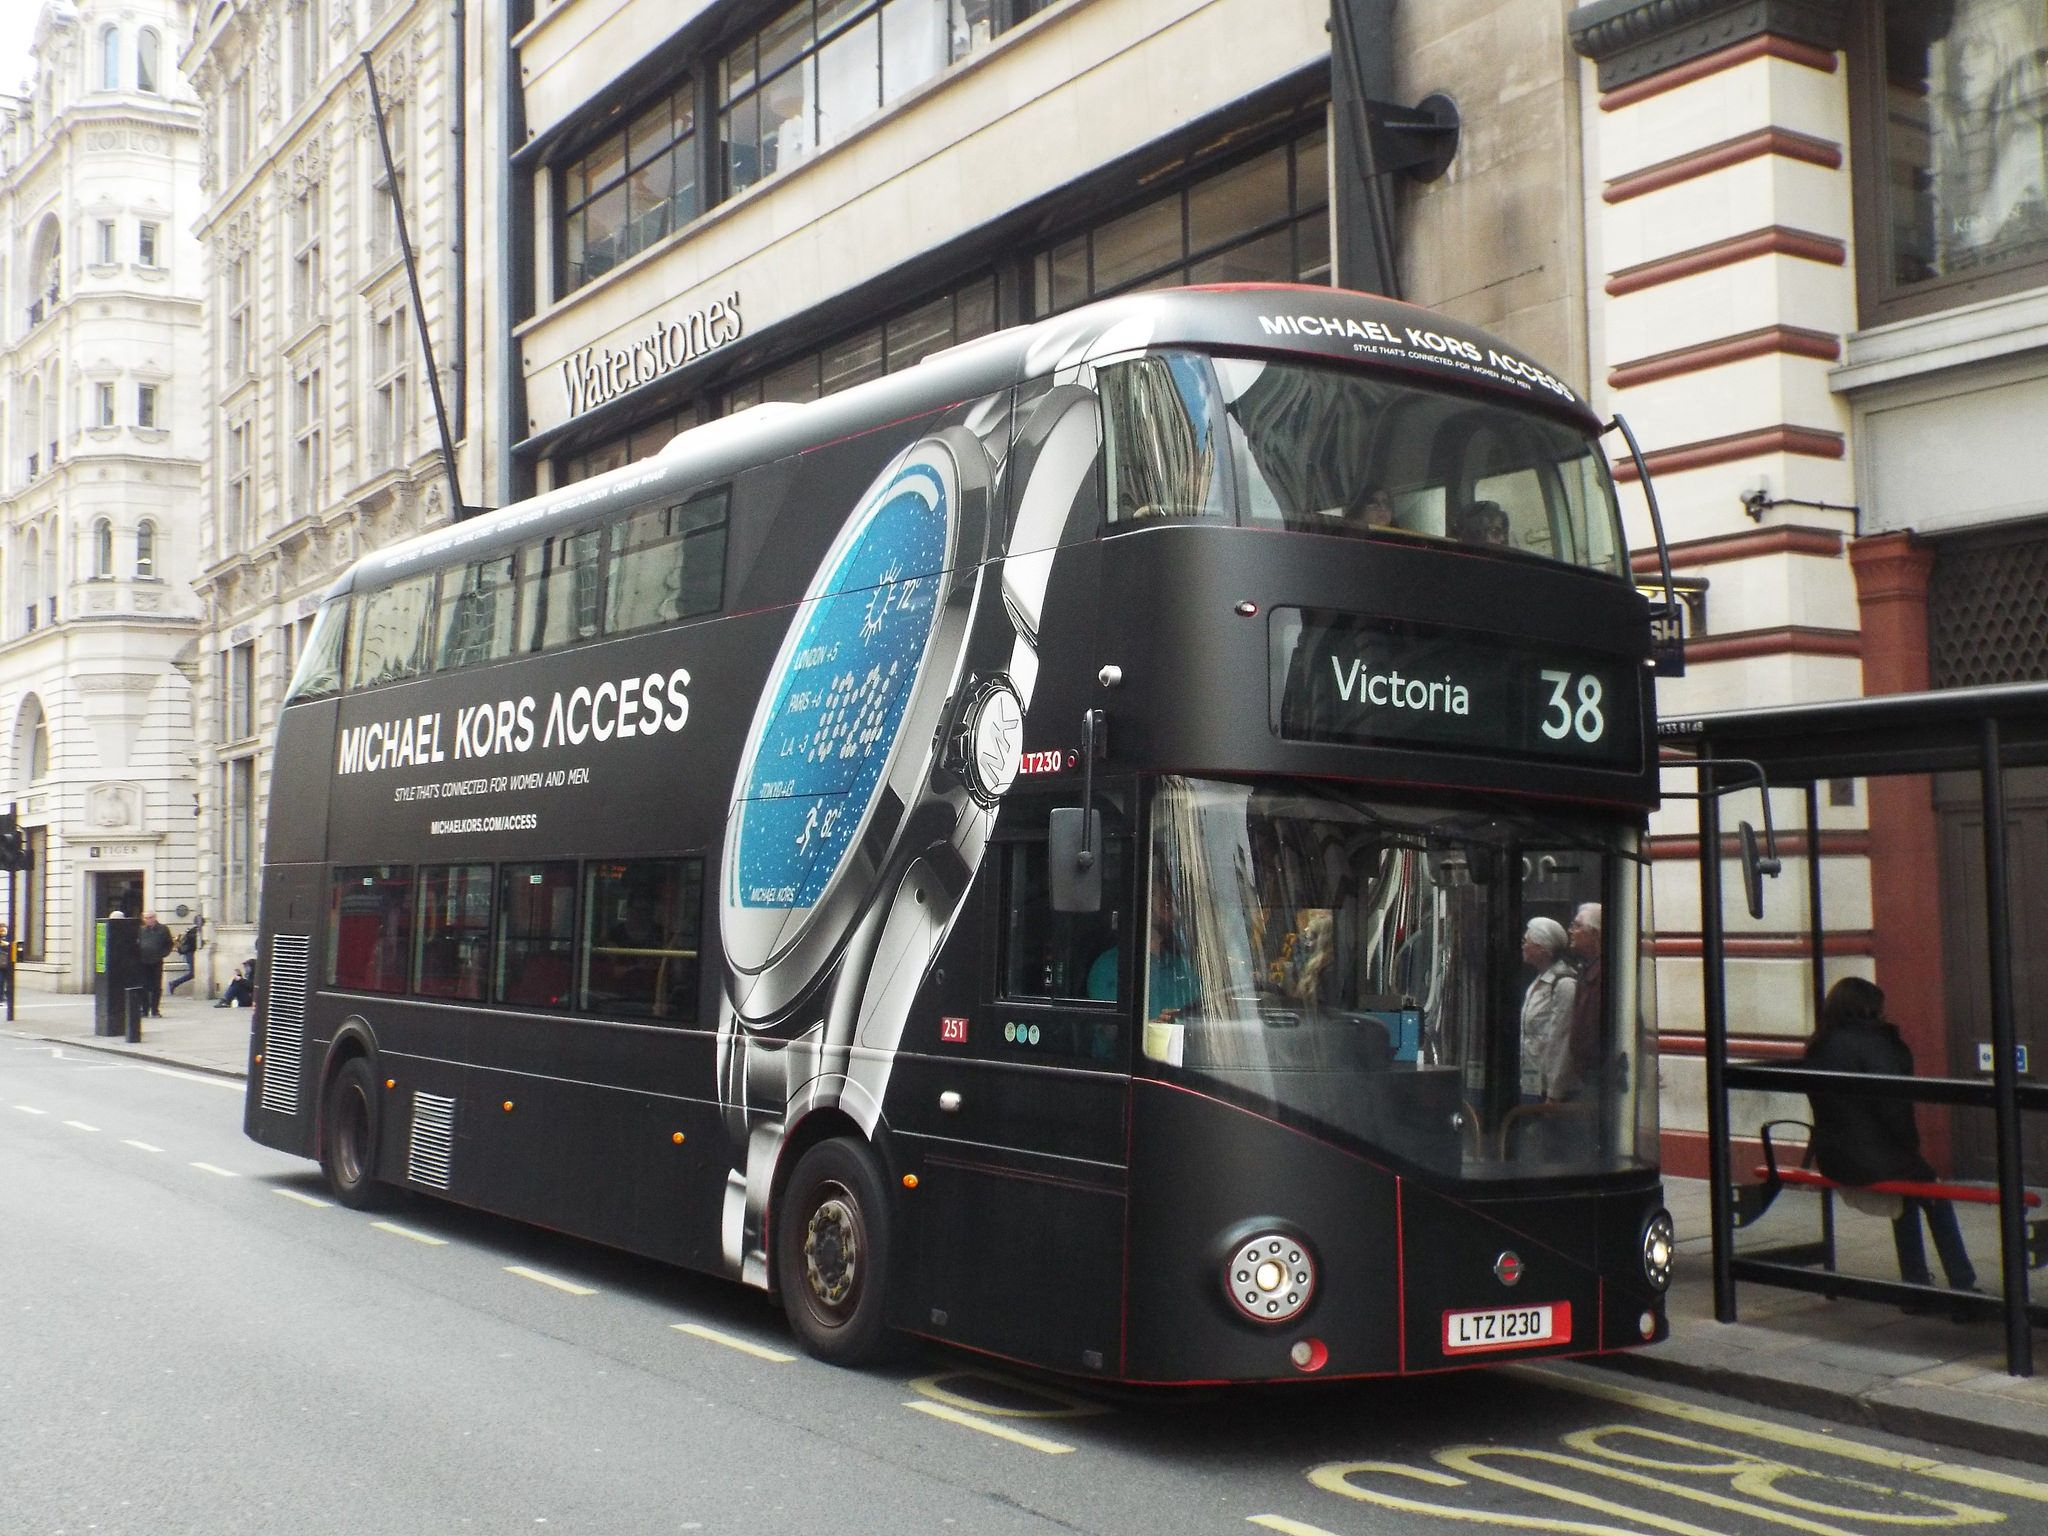 Arriva London Lt230 Ltz1230 Route 38 Piccadilly Circus London Bus London Transport New Routemaster